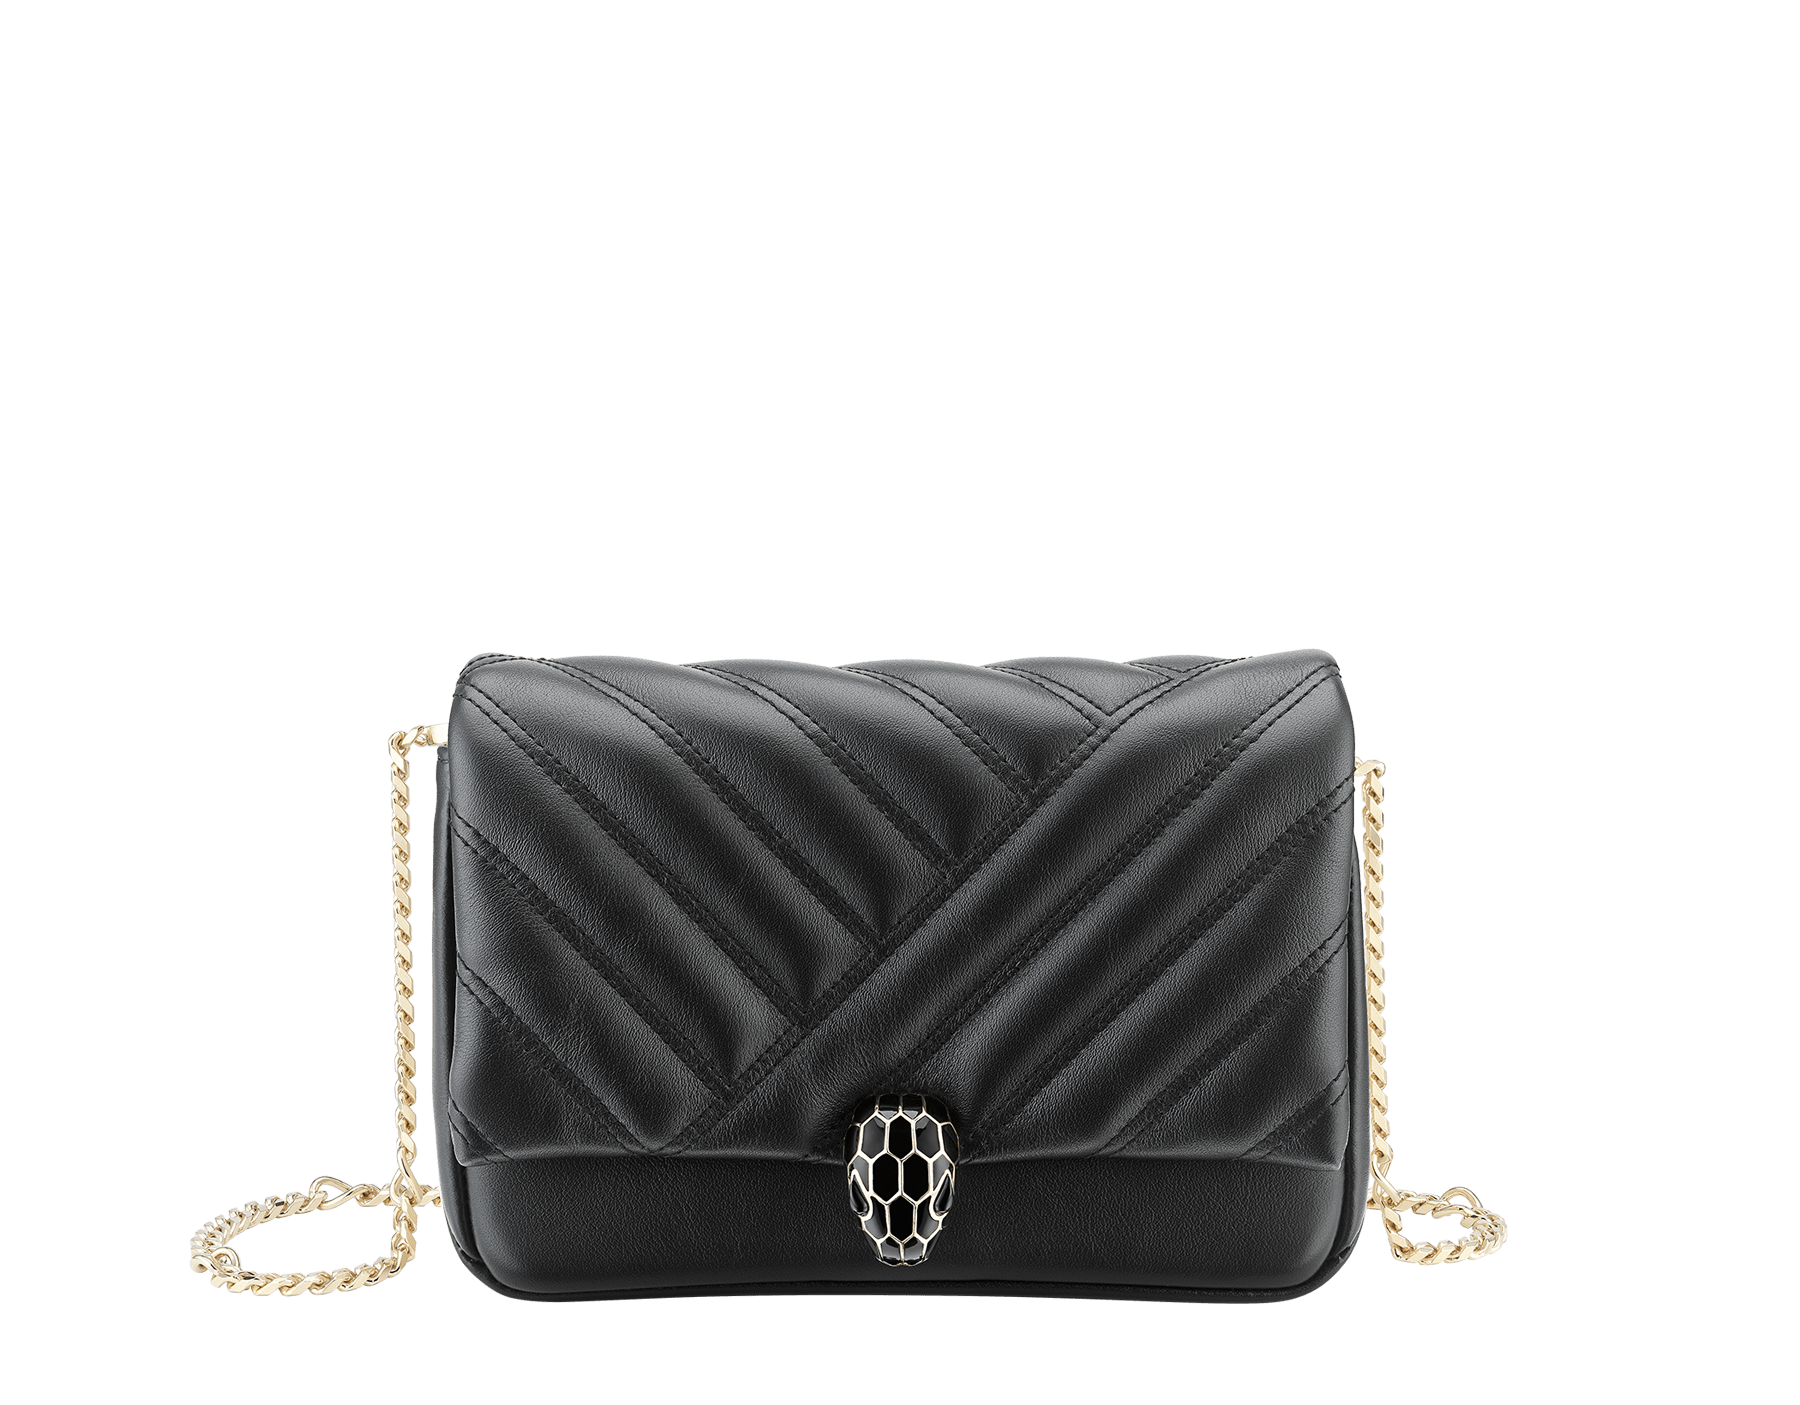 Serpenti Cabochon micro bag in soft matelassé black calf leather, with a graphic motif. Brass pink gold plated tempting snake head closure in black enamel and black onyx eyes. 288755 image 1